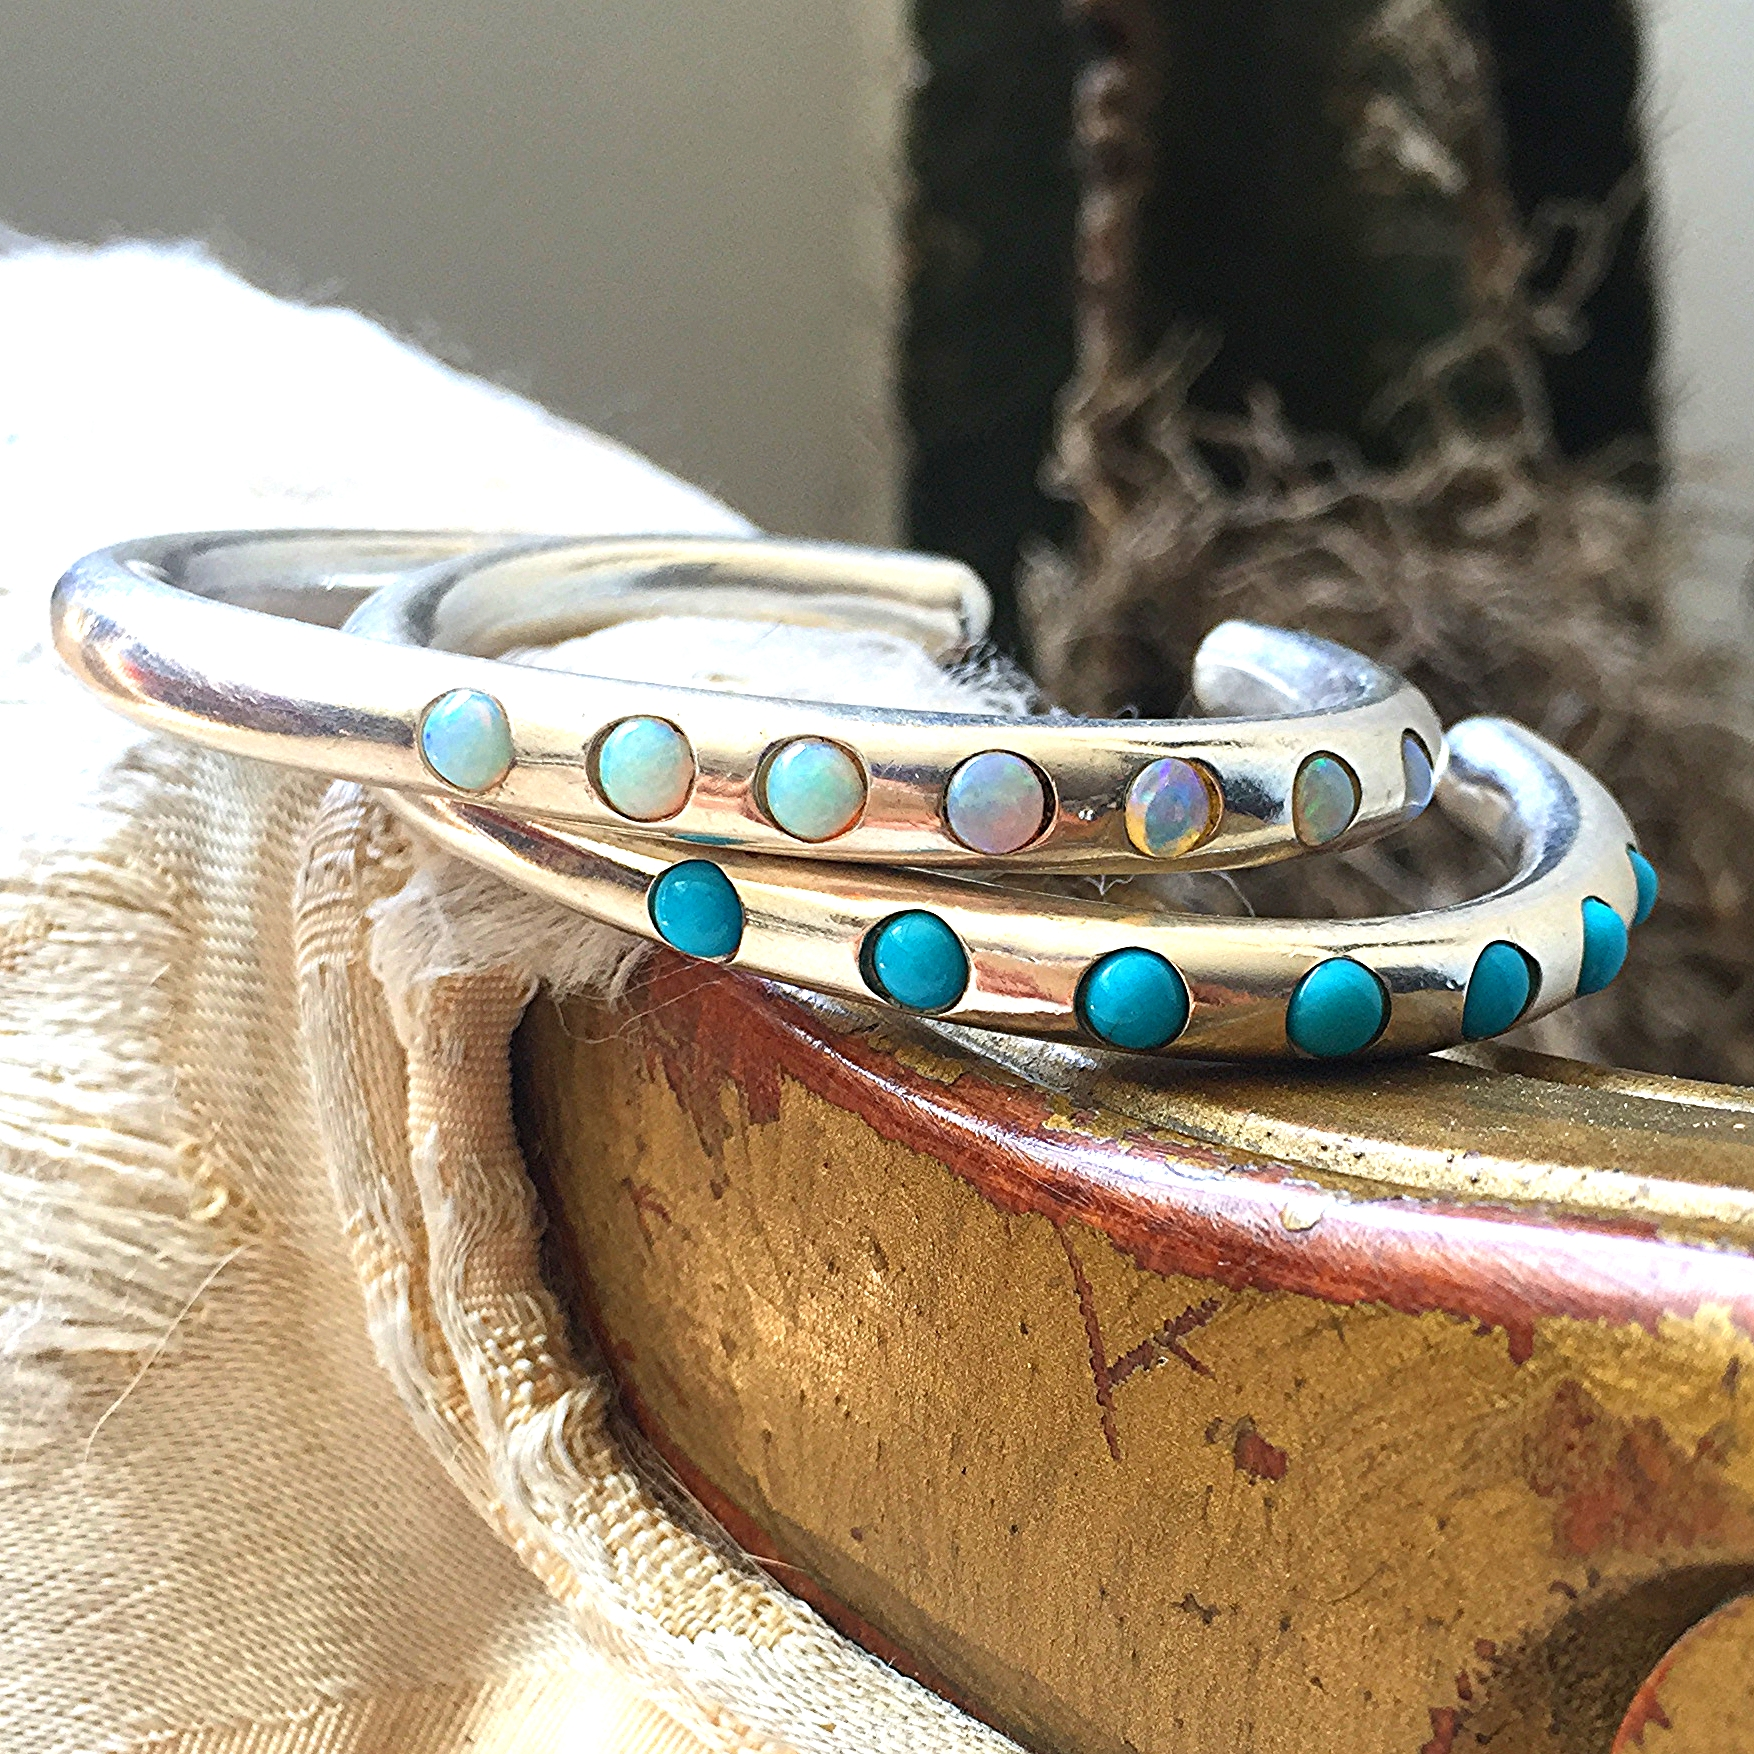 New opal and sleeping beauty turquoise Cufflings in sterling silver.